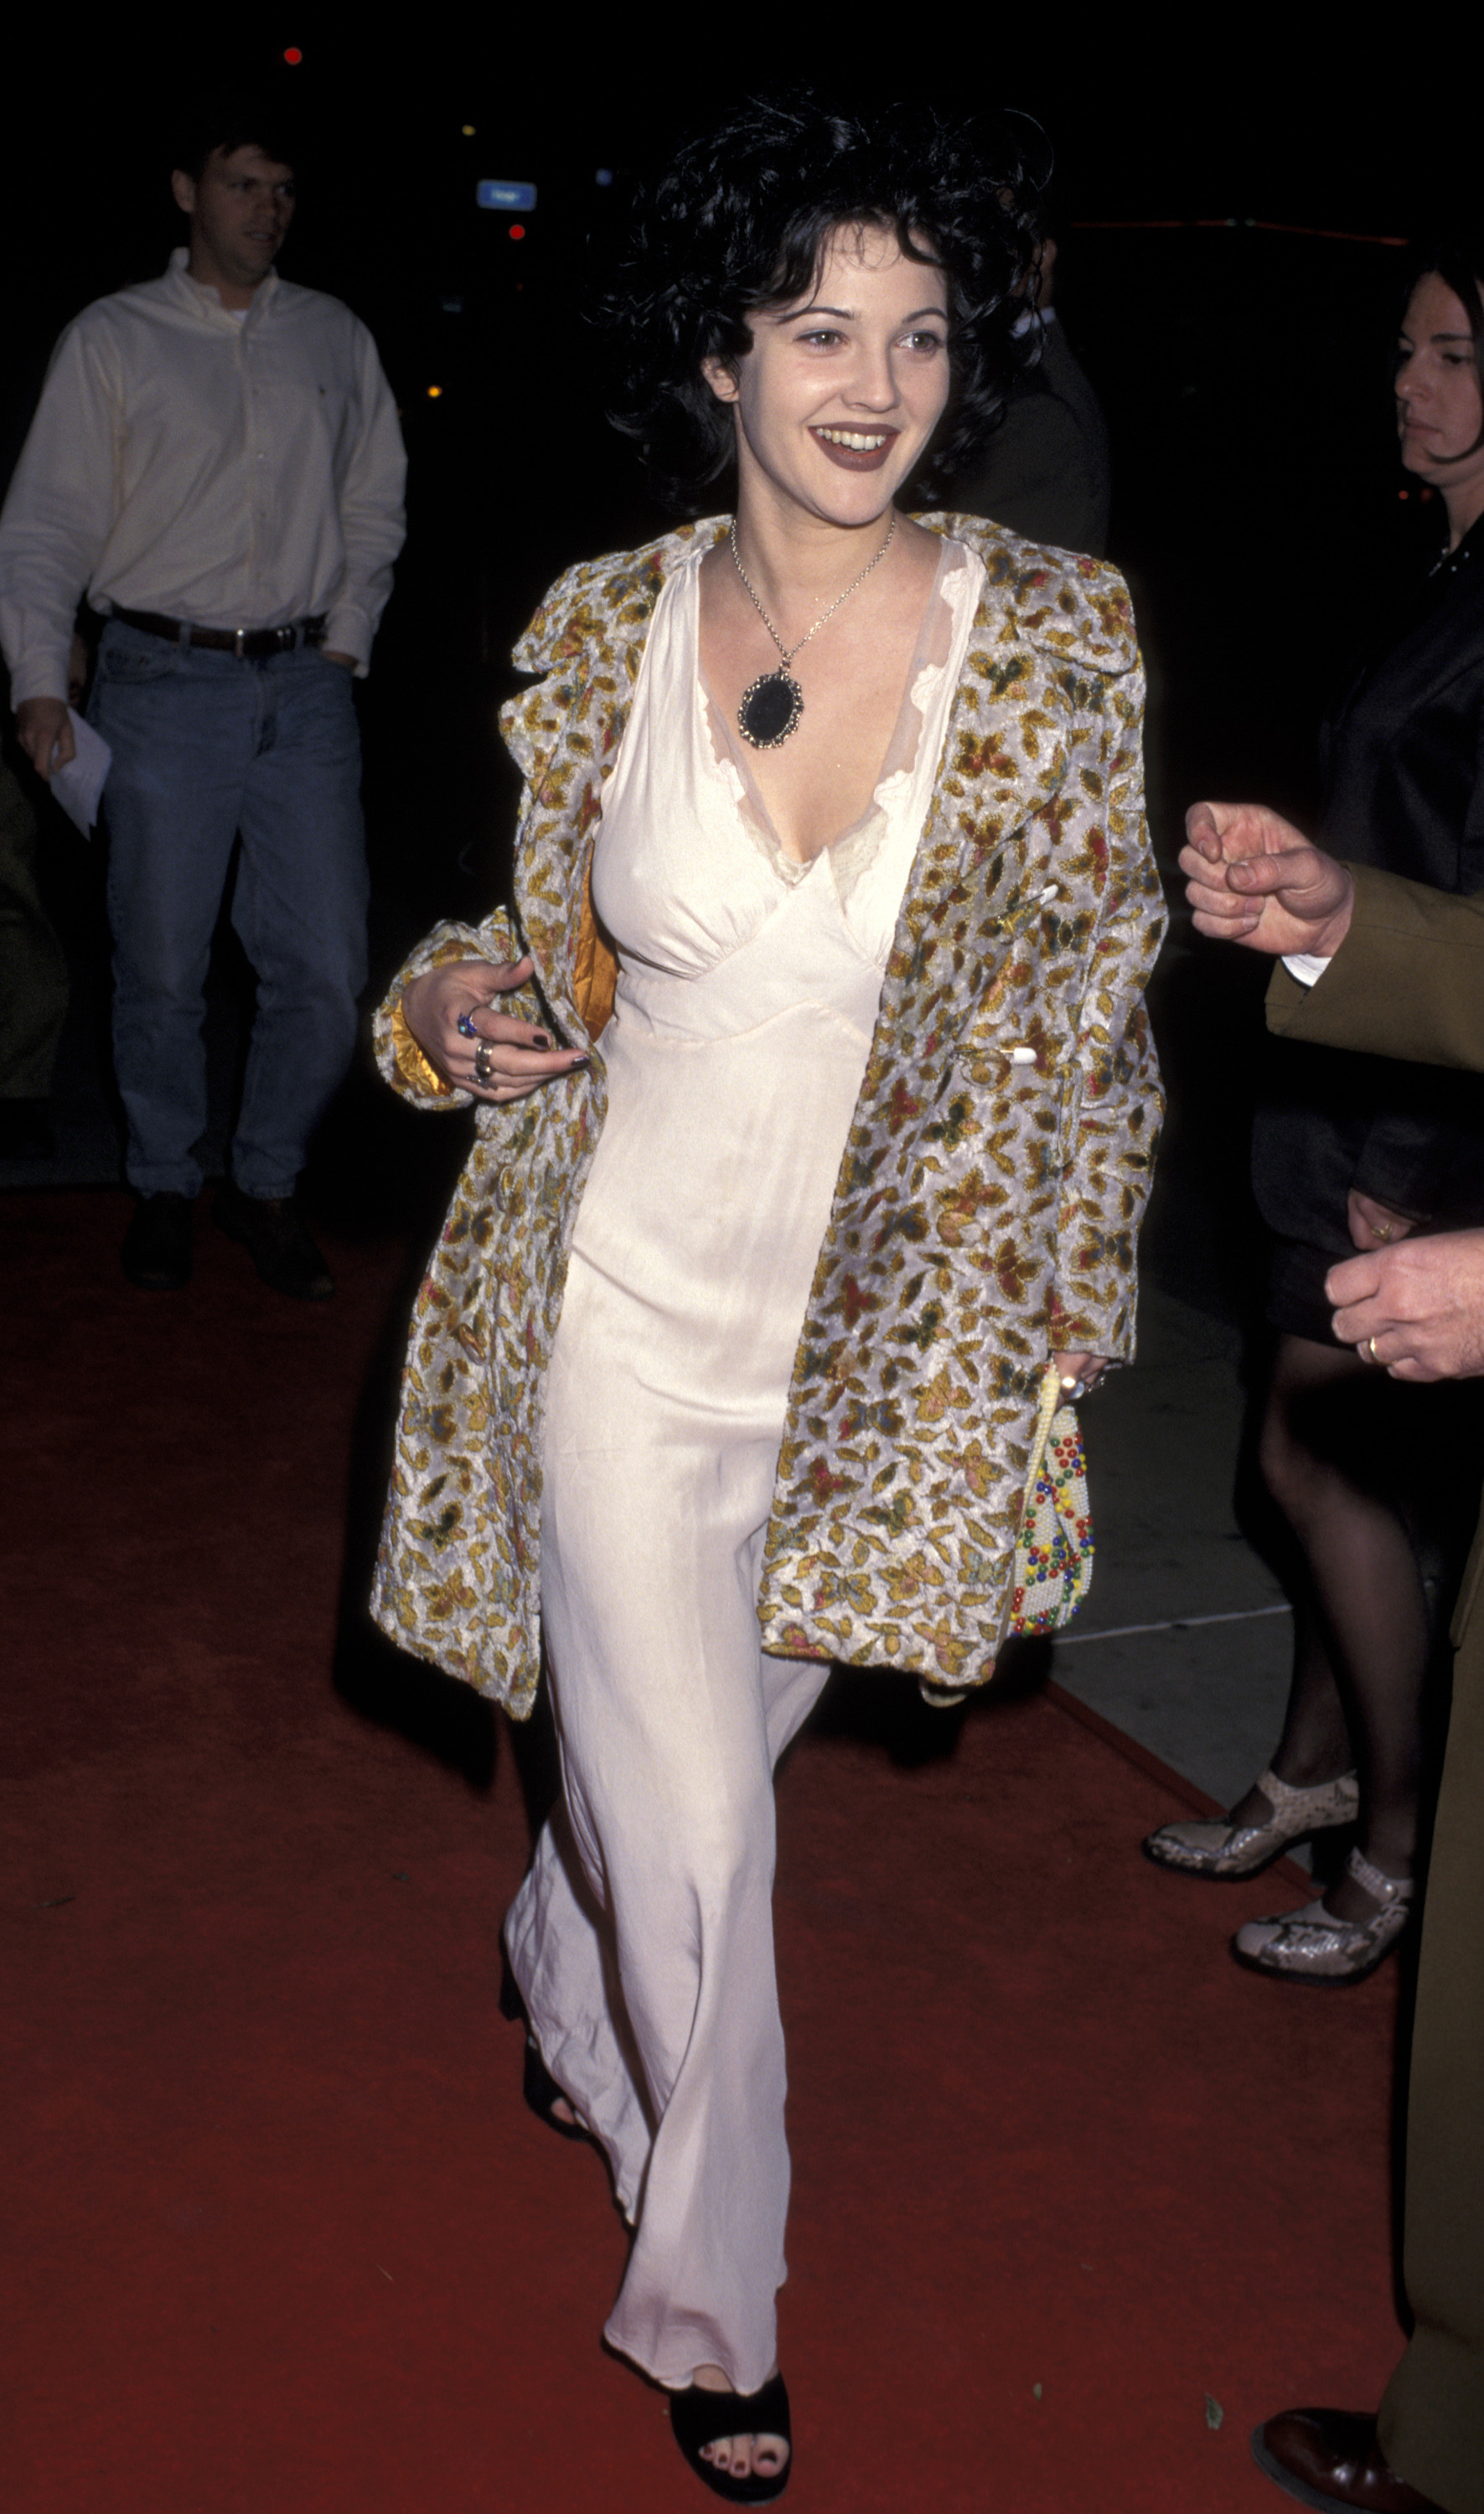 Photo of Drew Barrymore in a long dress and coat